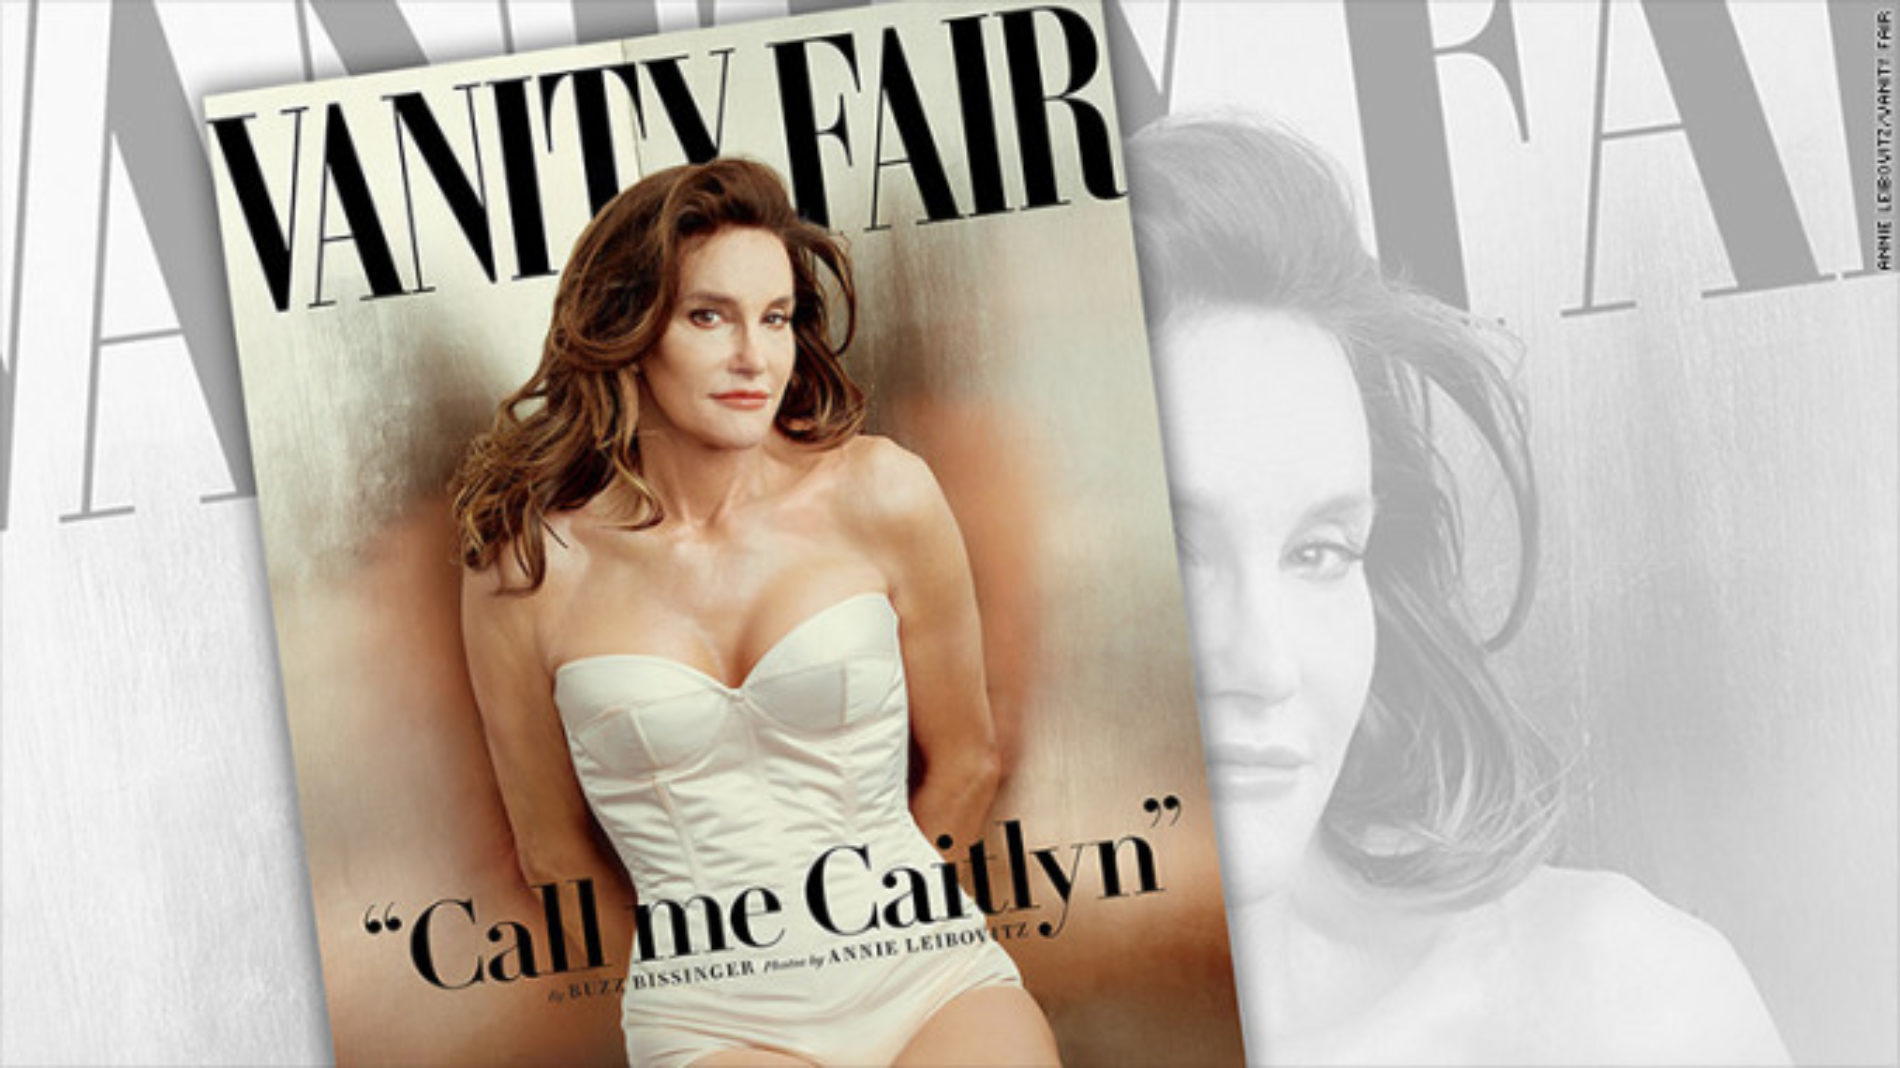 That Piece About Calling Her 'Caitlyn'